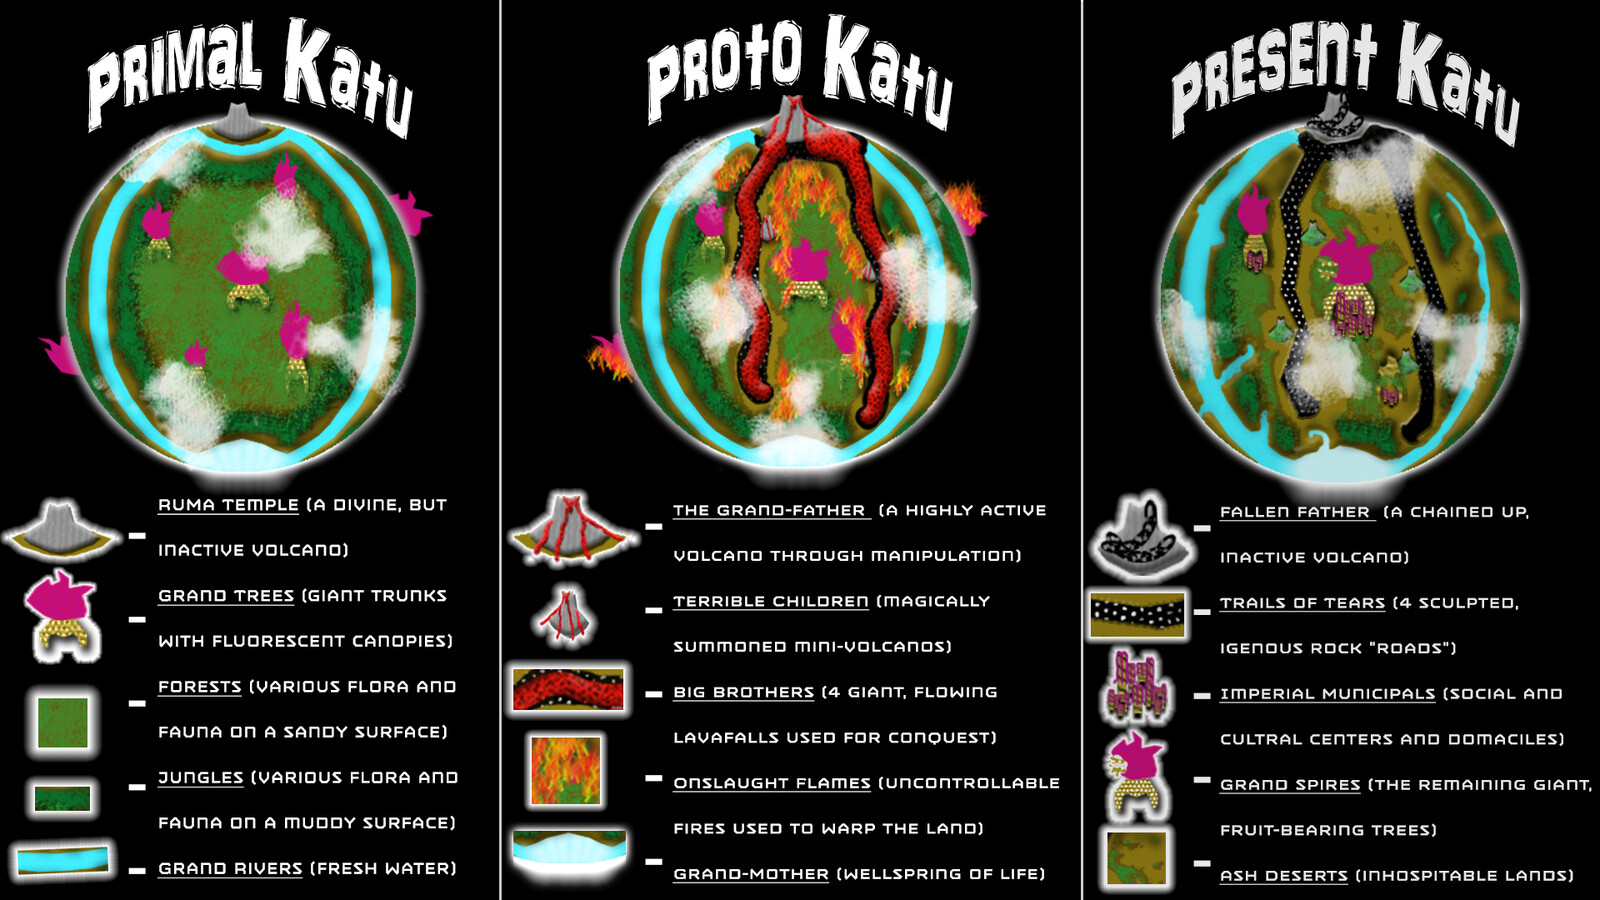 A legend for various landmarks within the 3 main phases of Katu